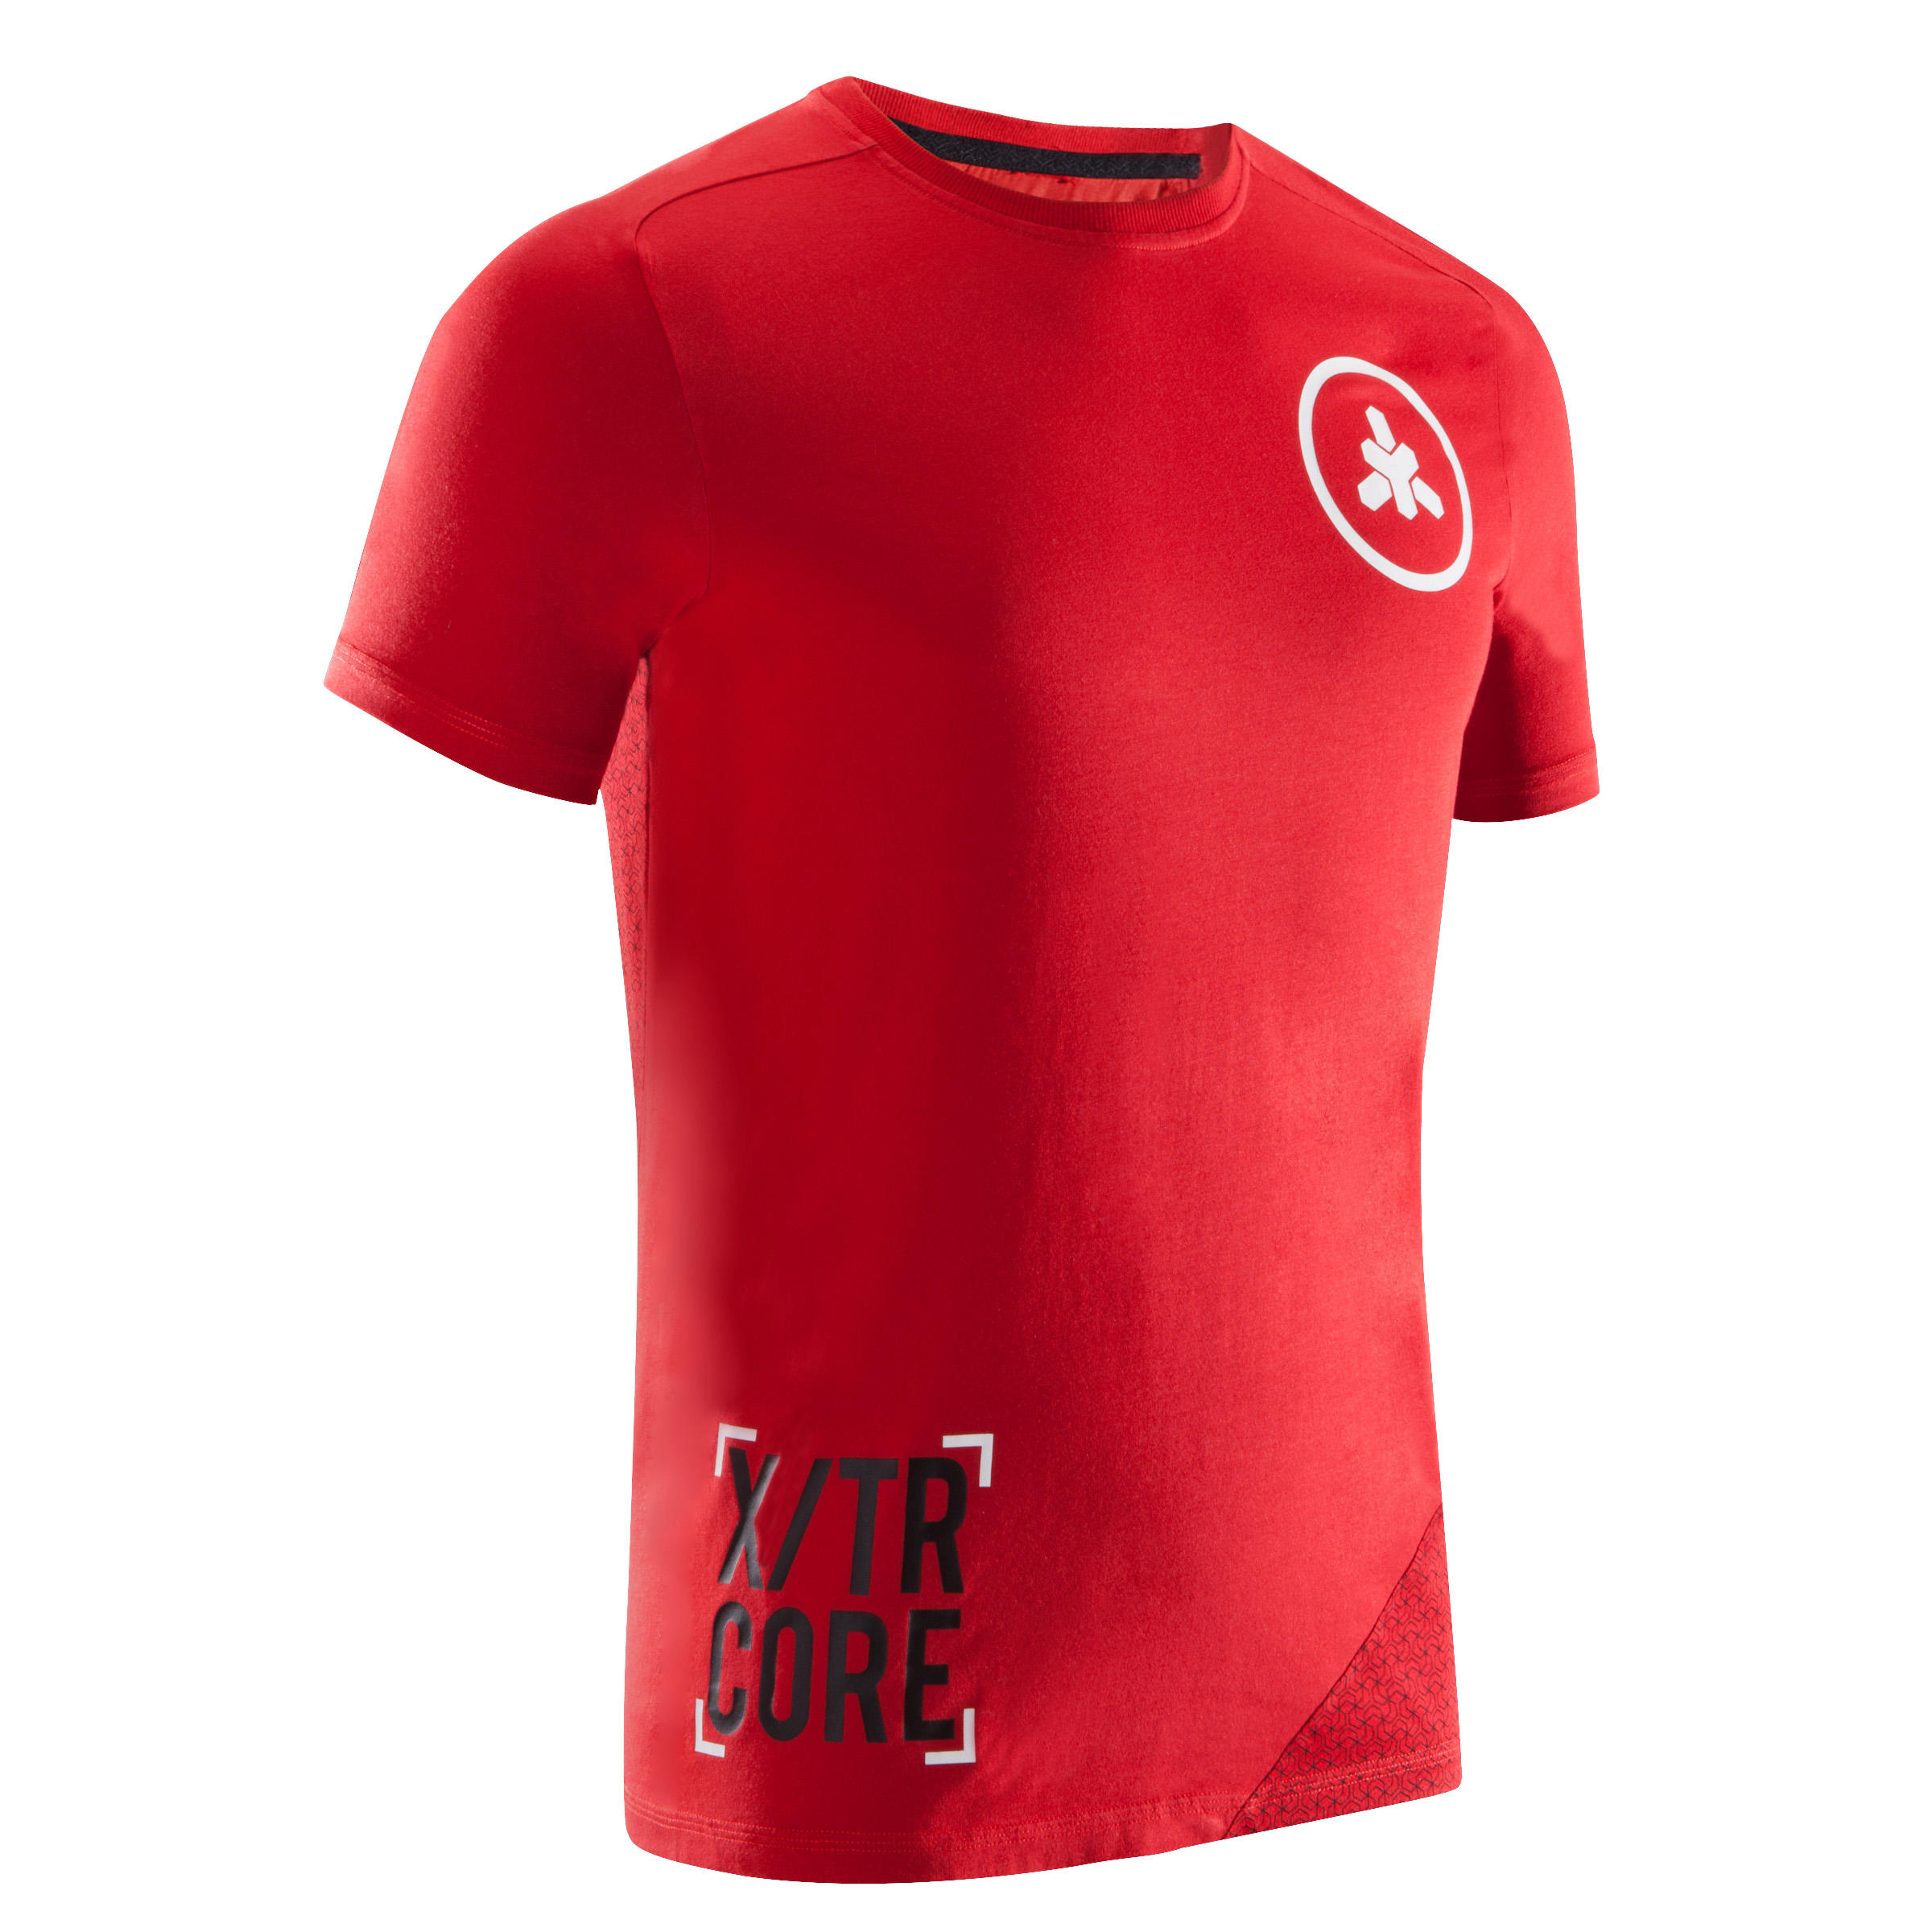 500 Cross Training T-Shirt - Red